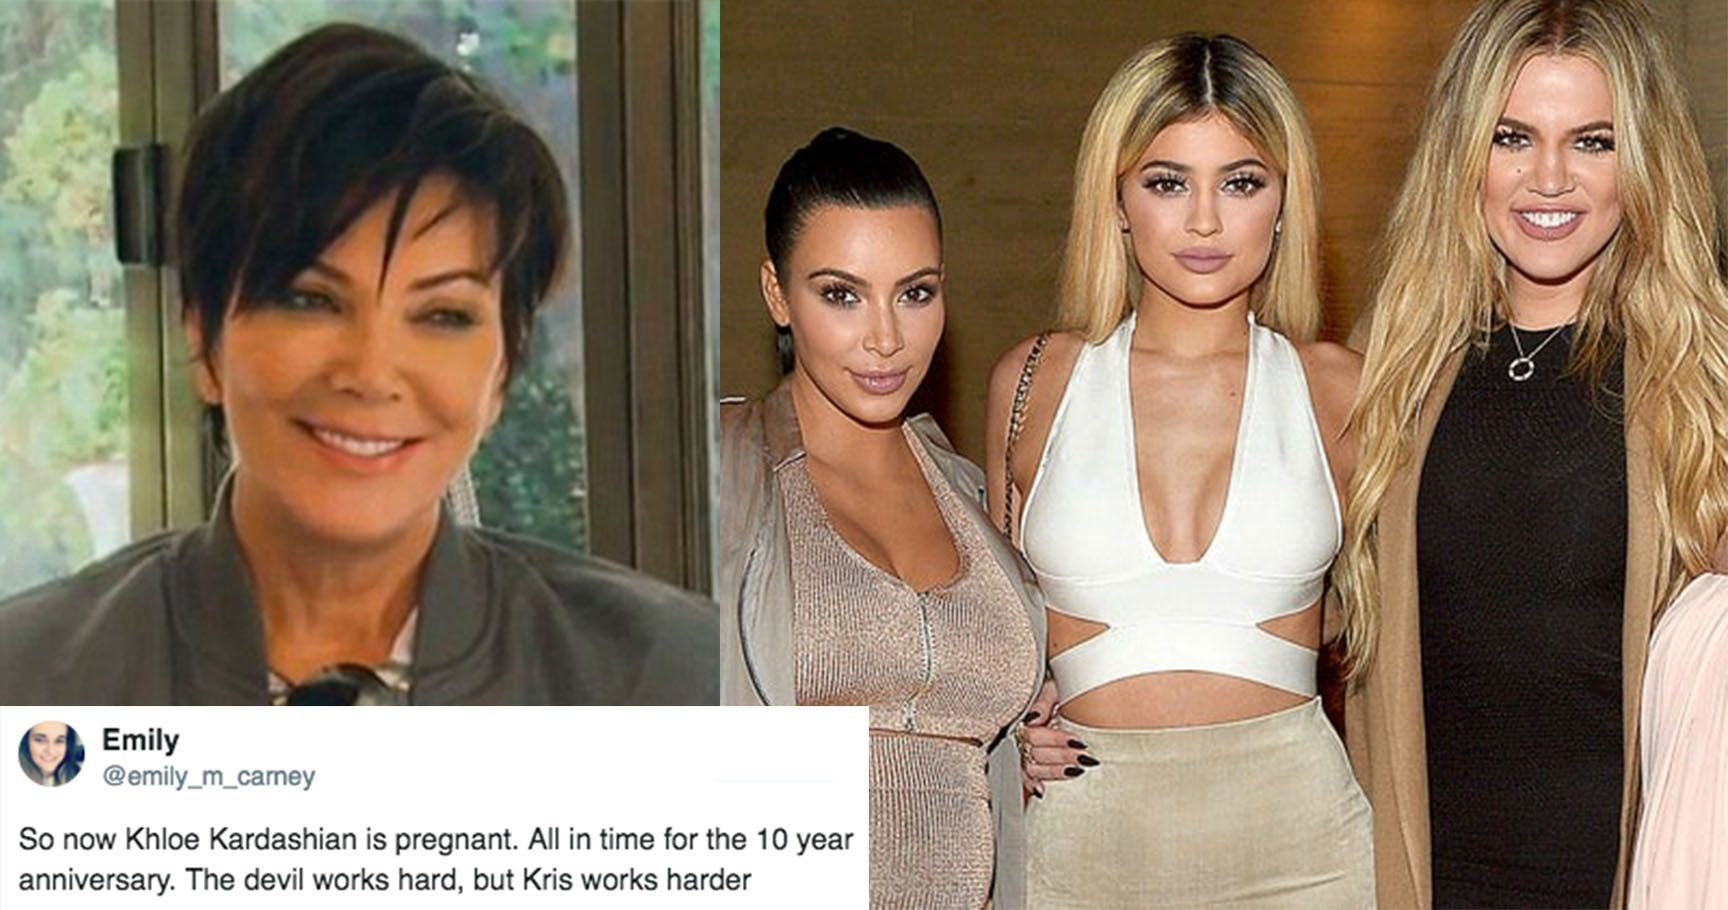 15 Hilarious Reactions To The Kardashian/Jenner Pregnancies